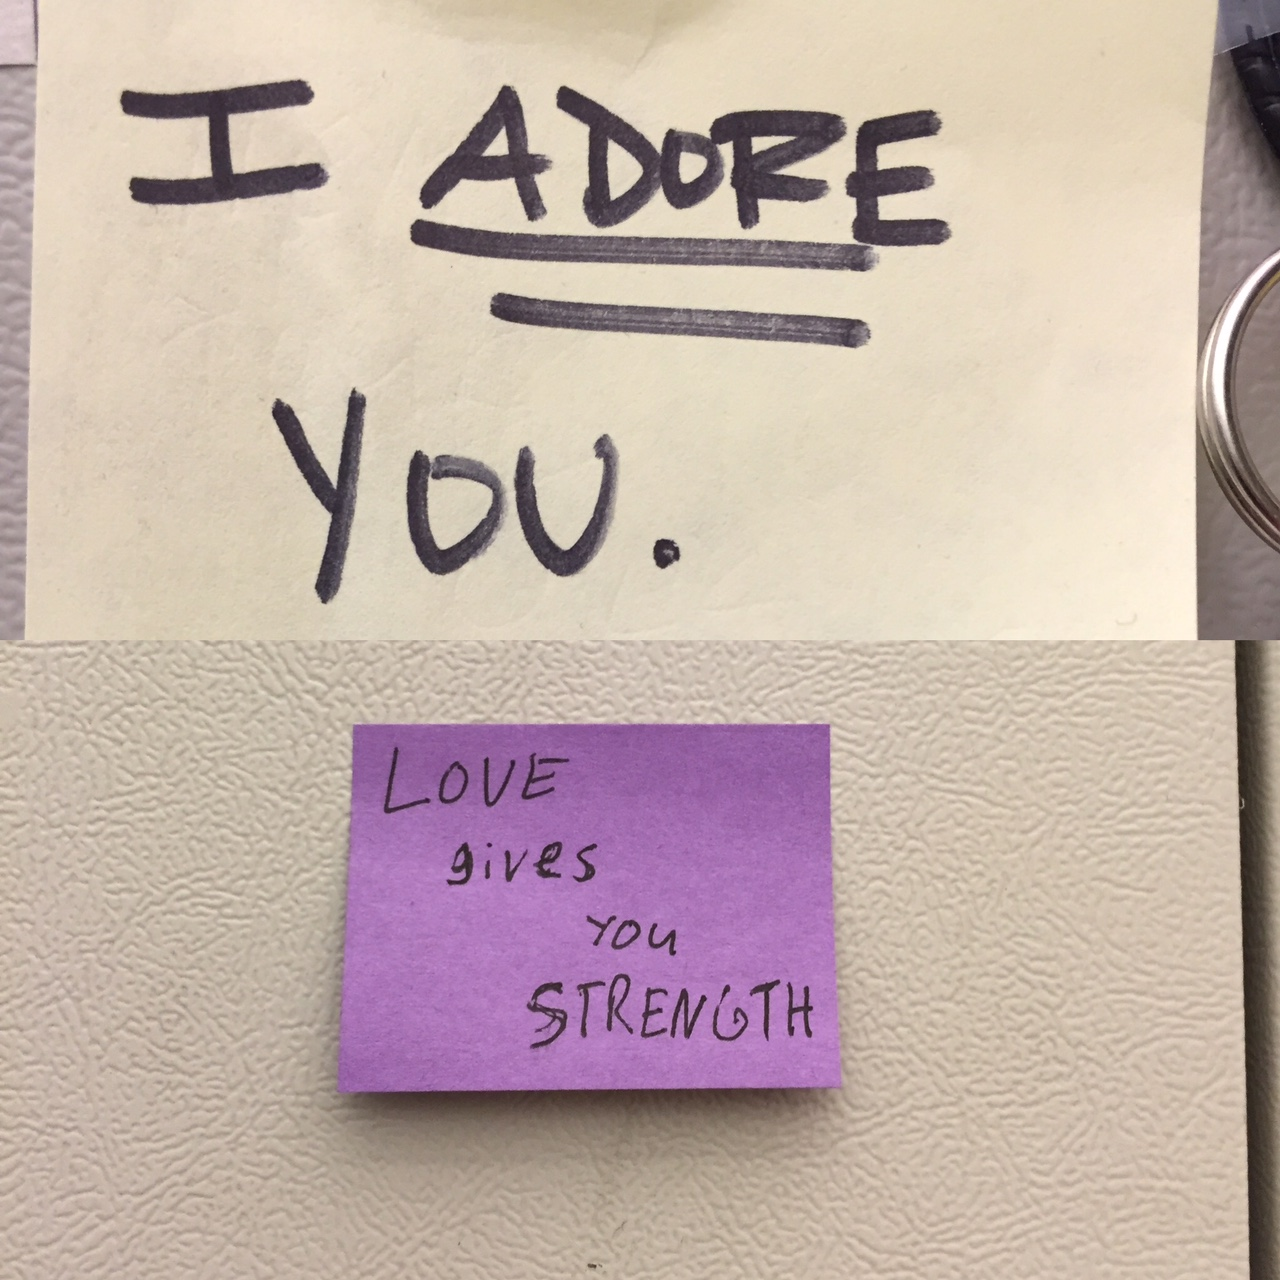 Post-It notes we leave each other in the office